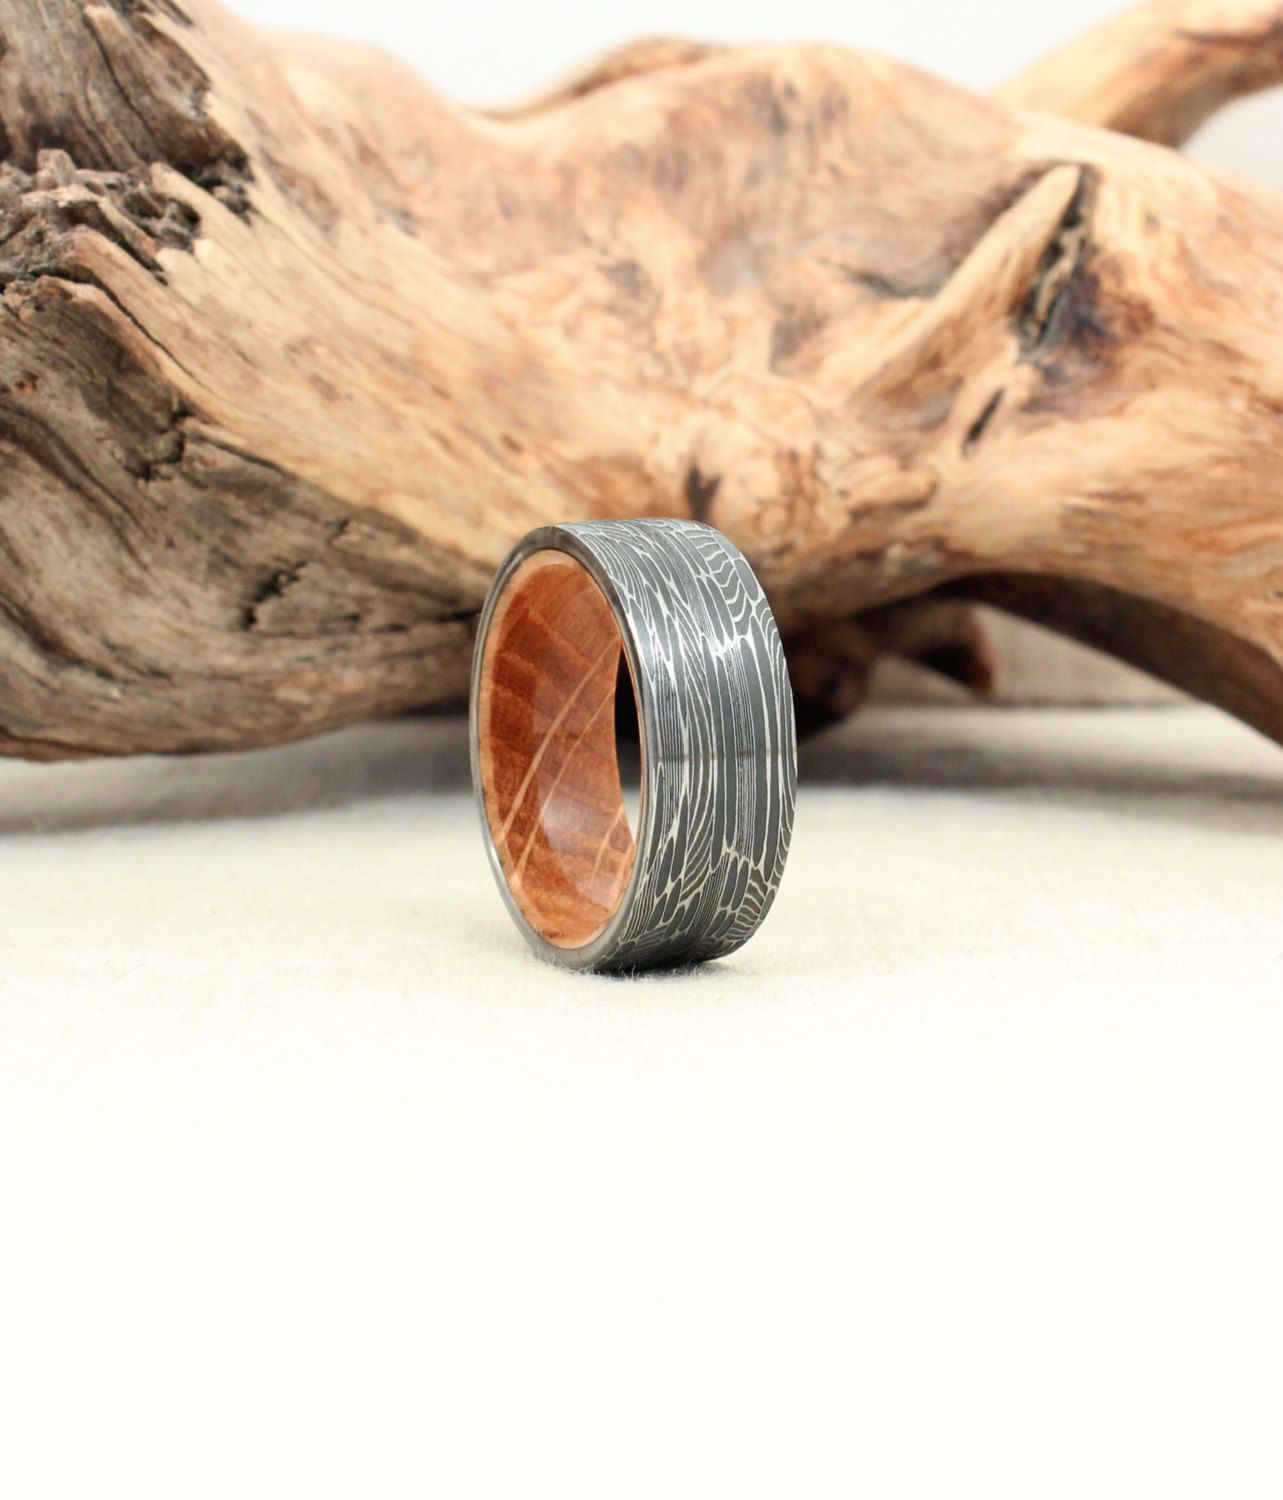 Damascus Steel and Wood Ring Bourbon Barrel White Oak Stave Wood